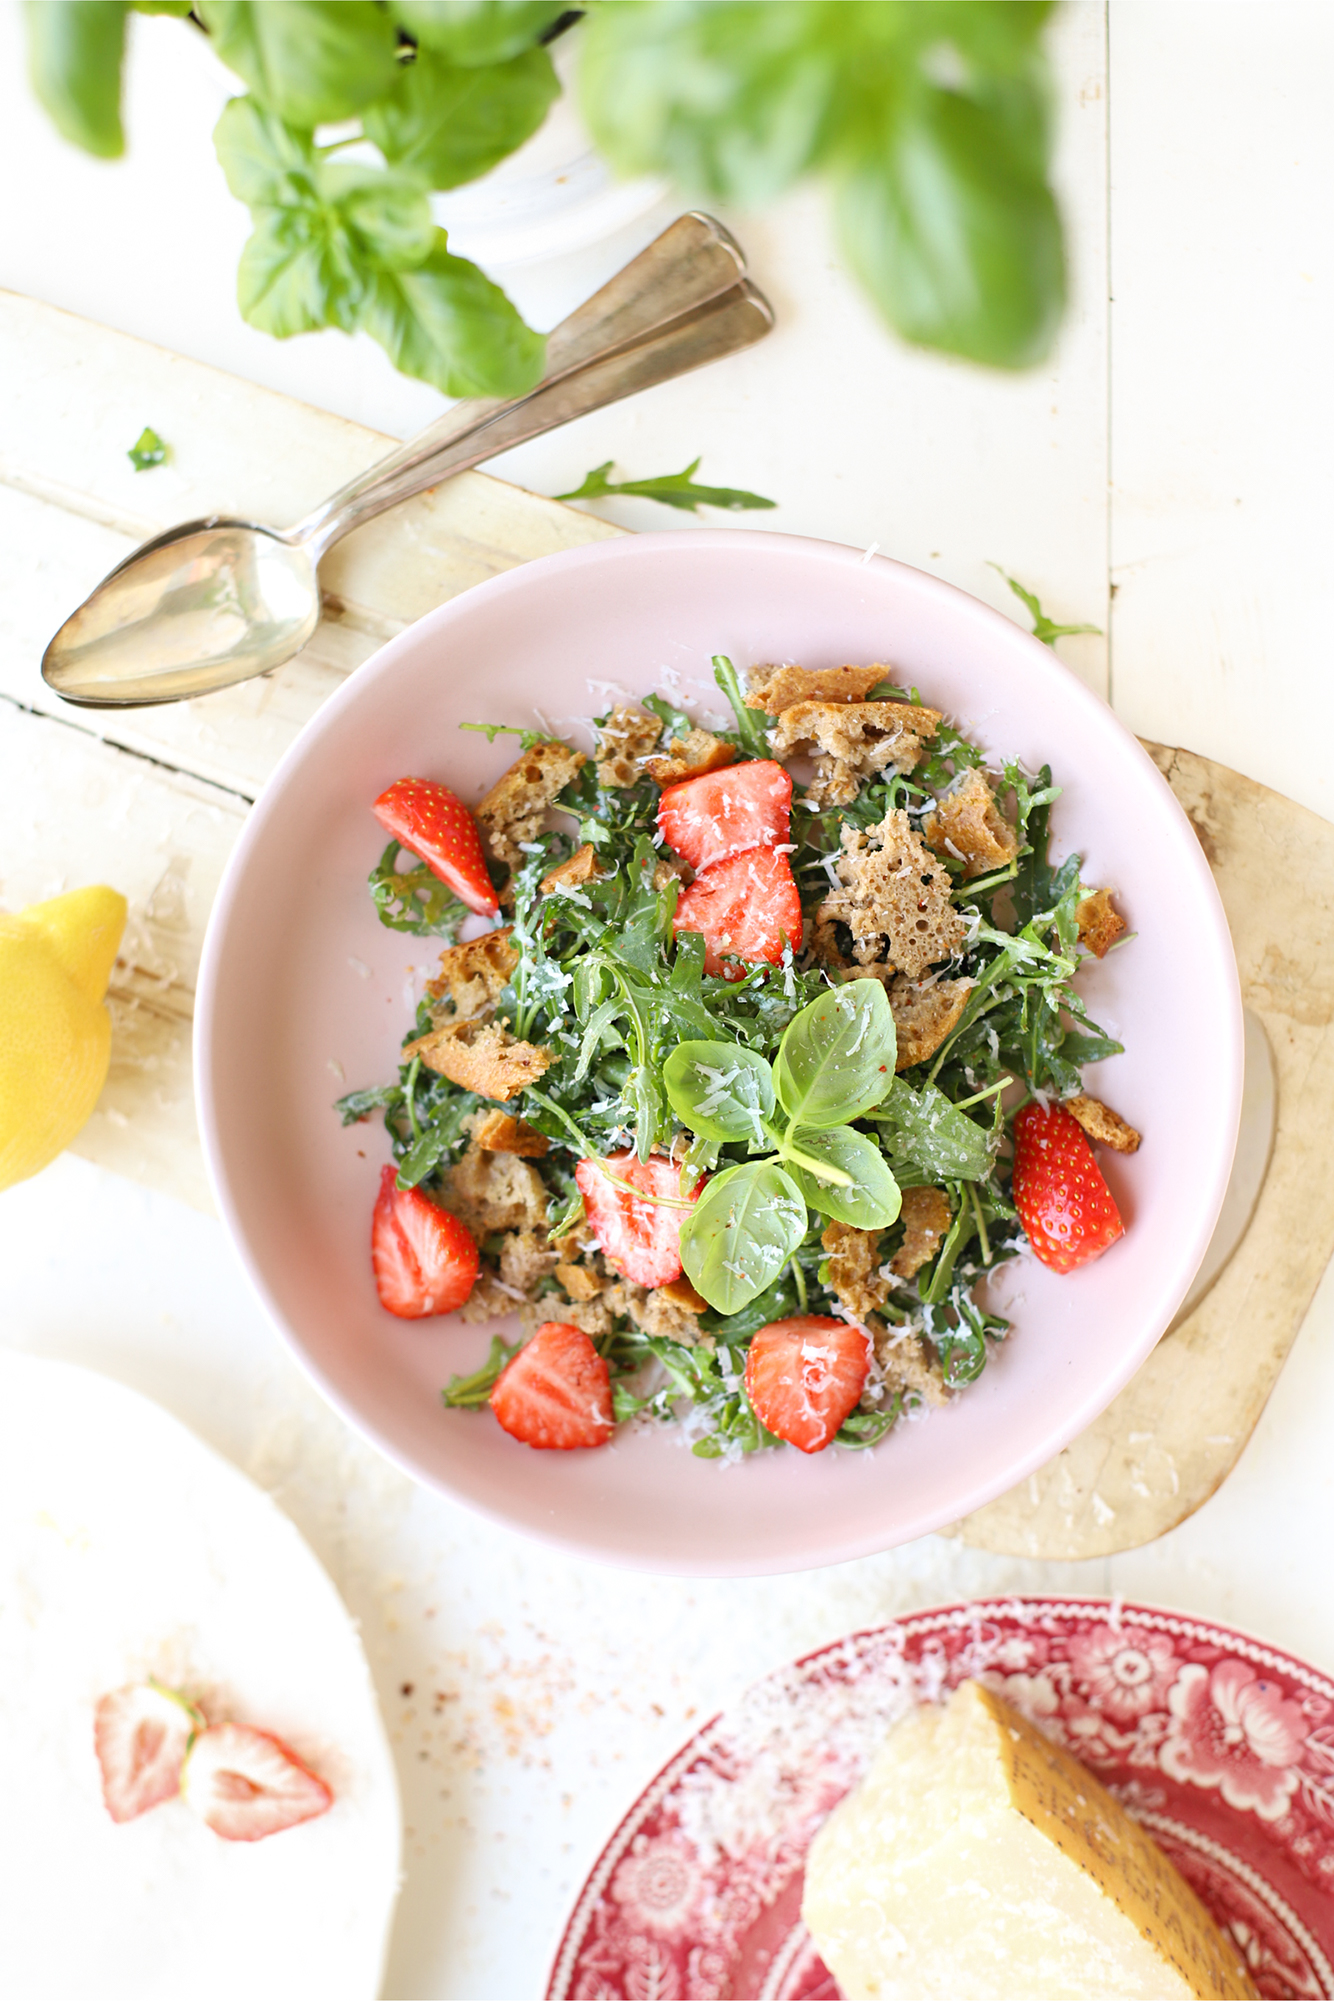 Panzanella salade met aardbei, citroen & Parmezaan 'The Lemon Kitchen